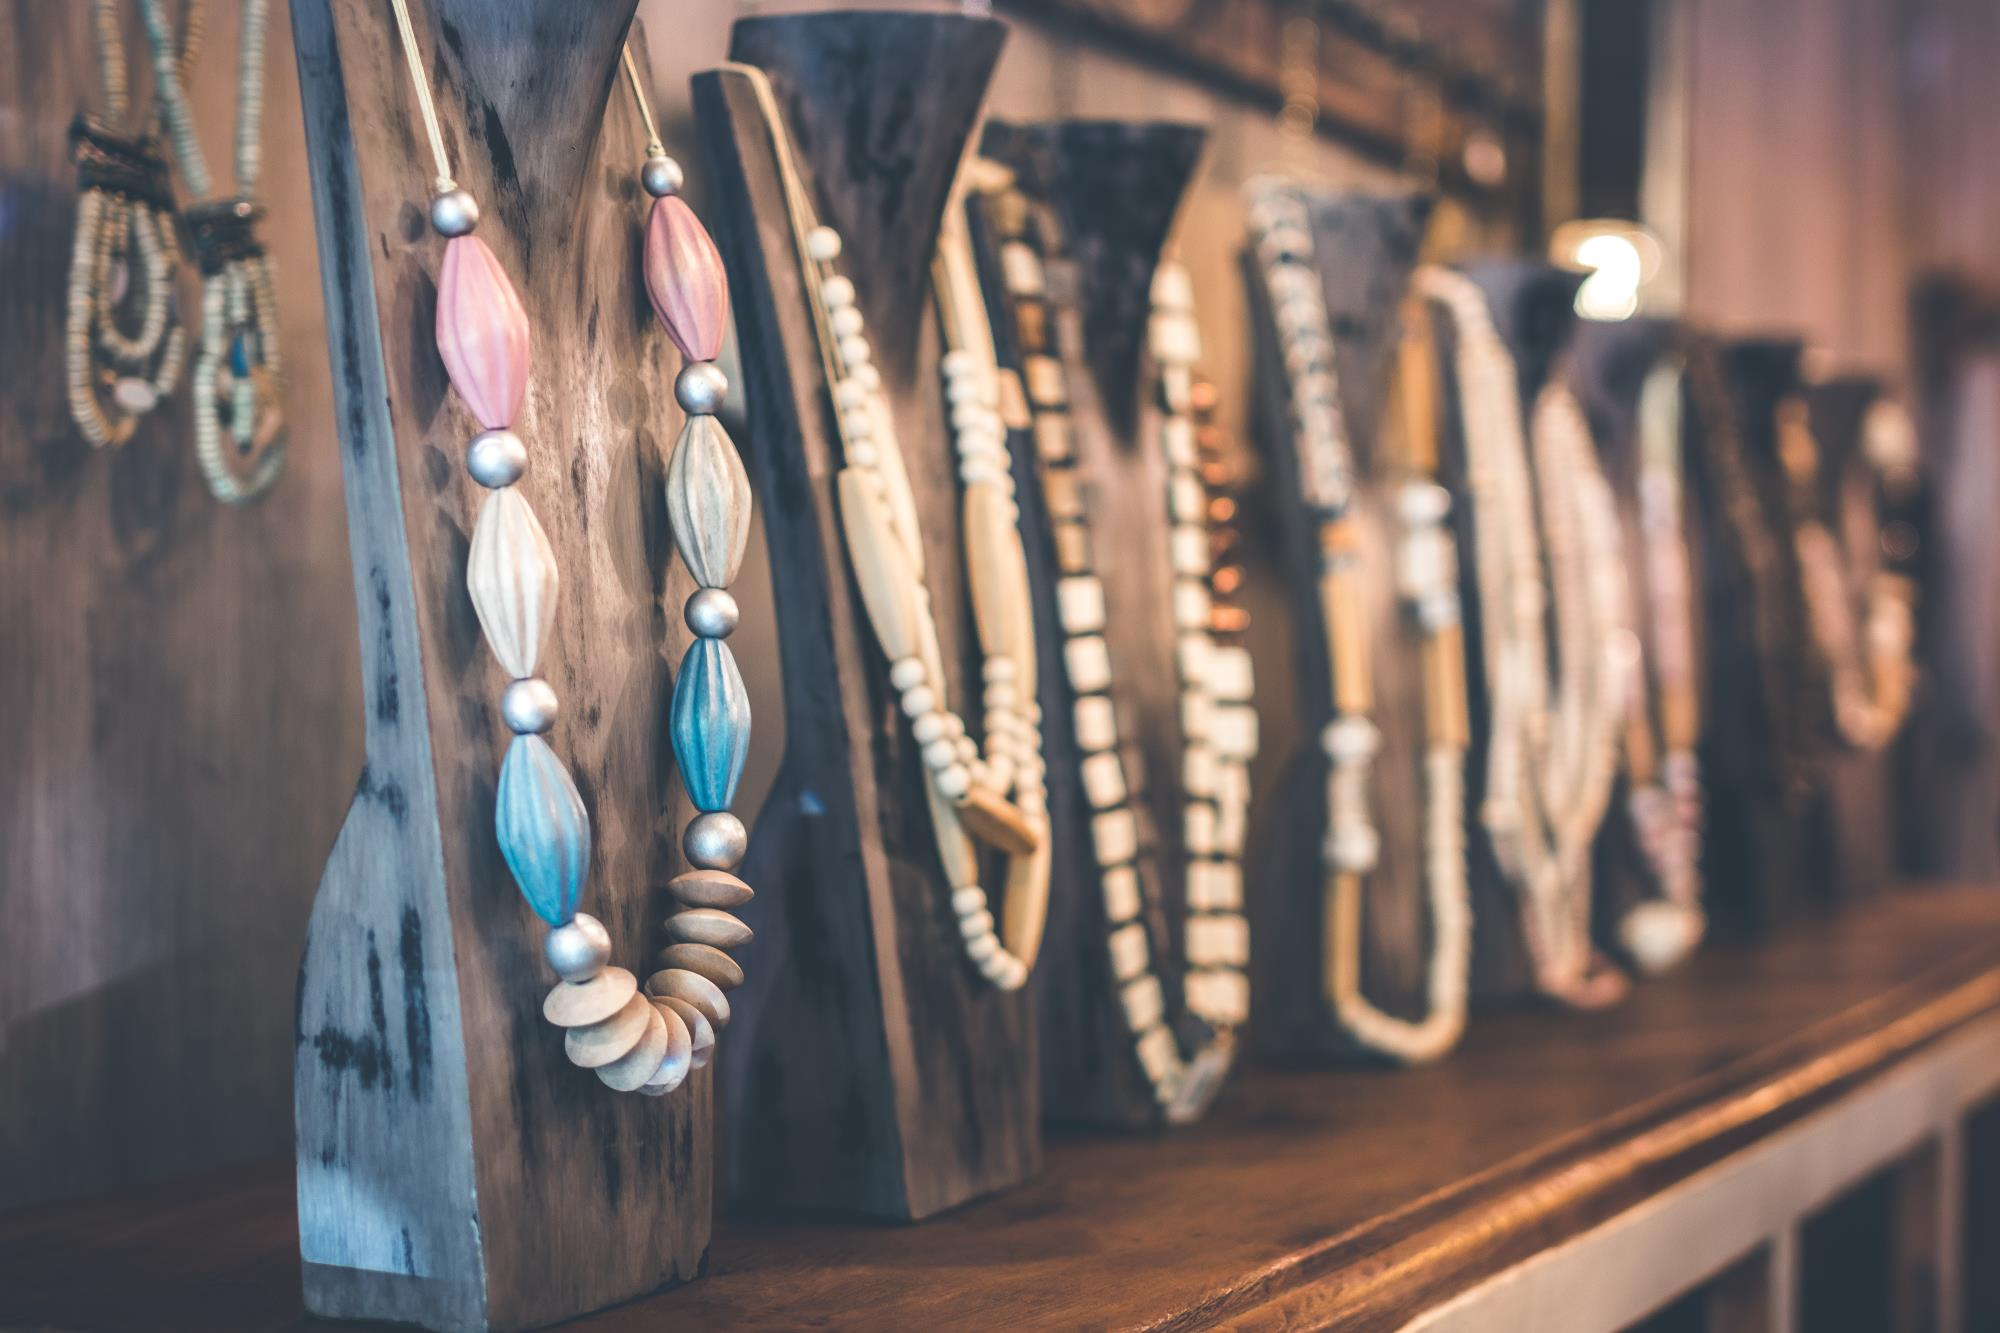 Row of hand-made necklaces on a store shelf